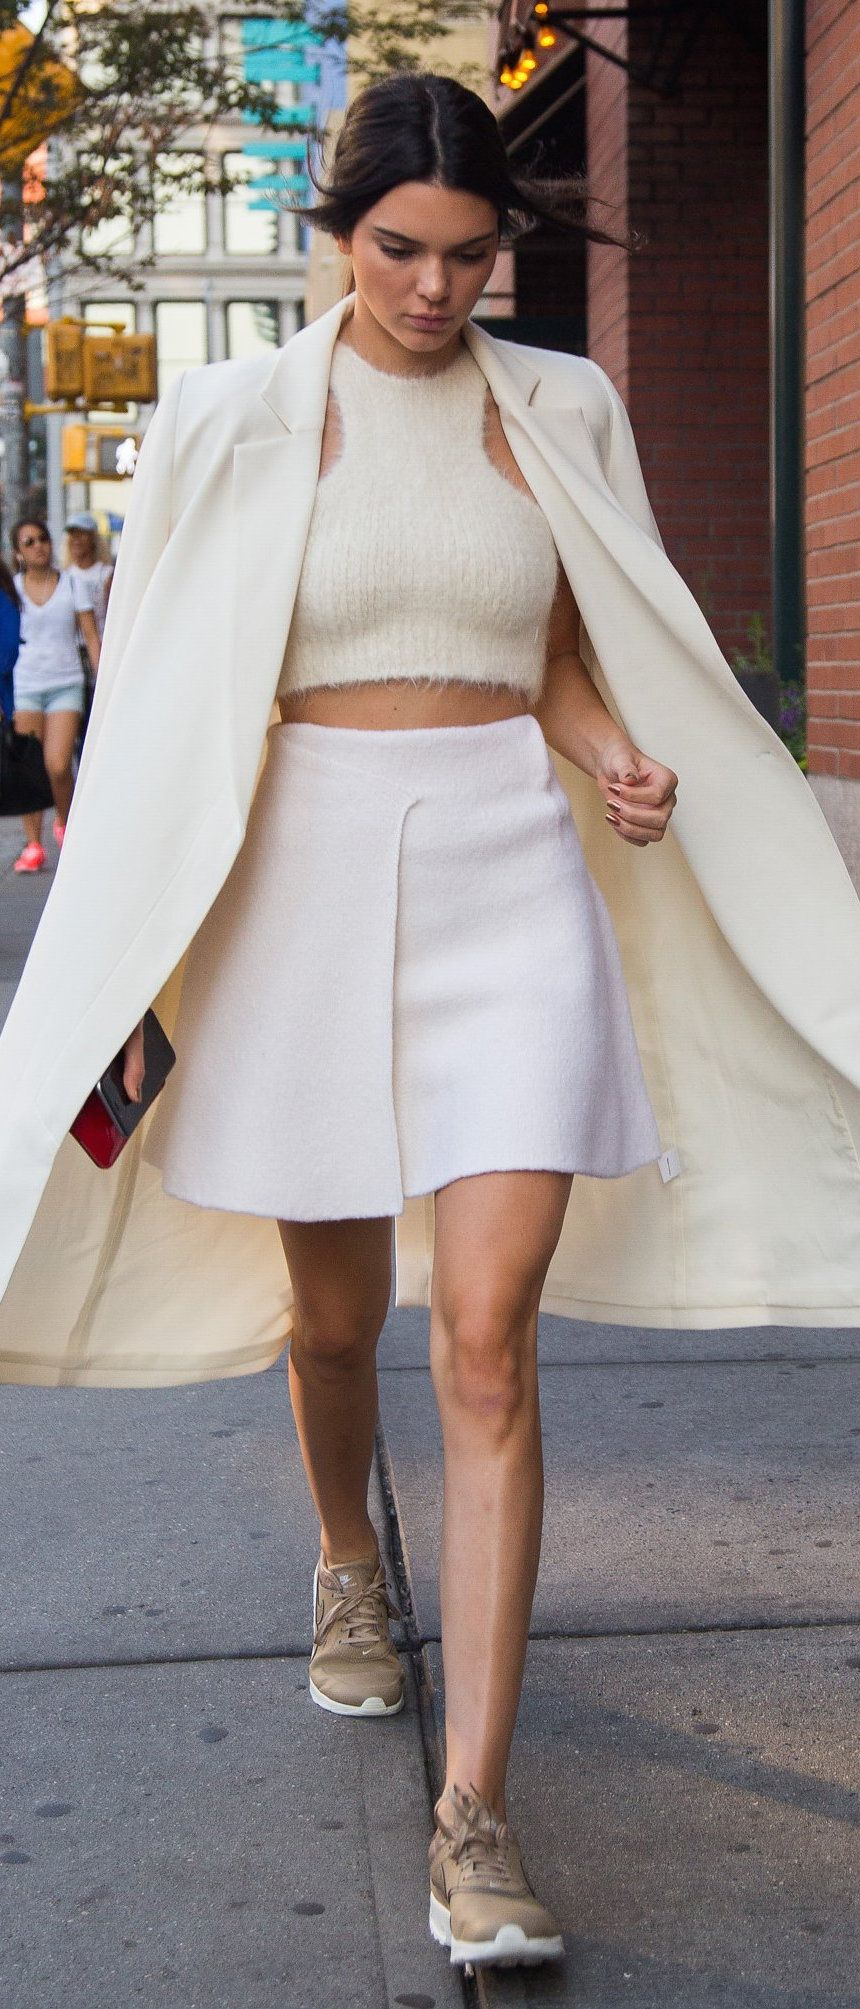 086d6ea818ed Kendall Jenner Serves Up a Lesson in Sneaker Chic